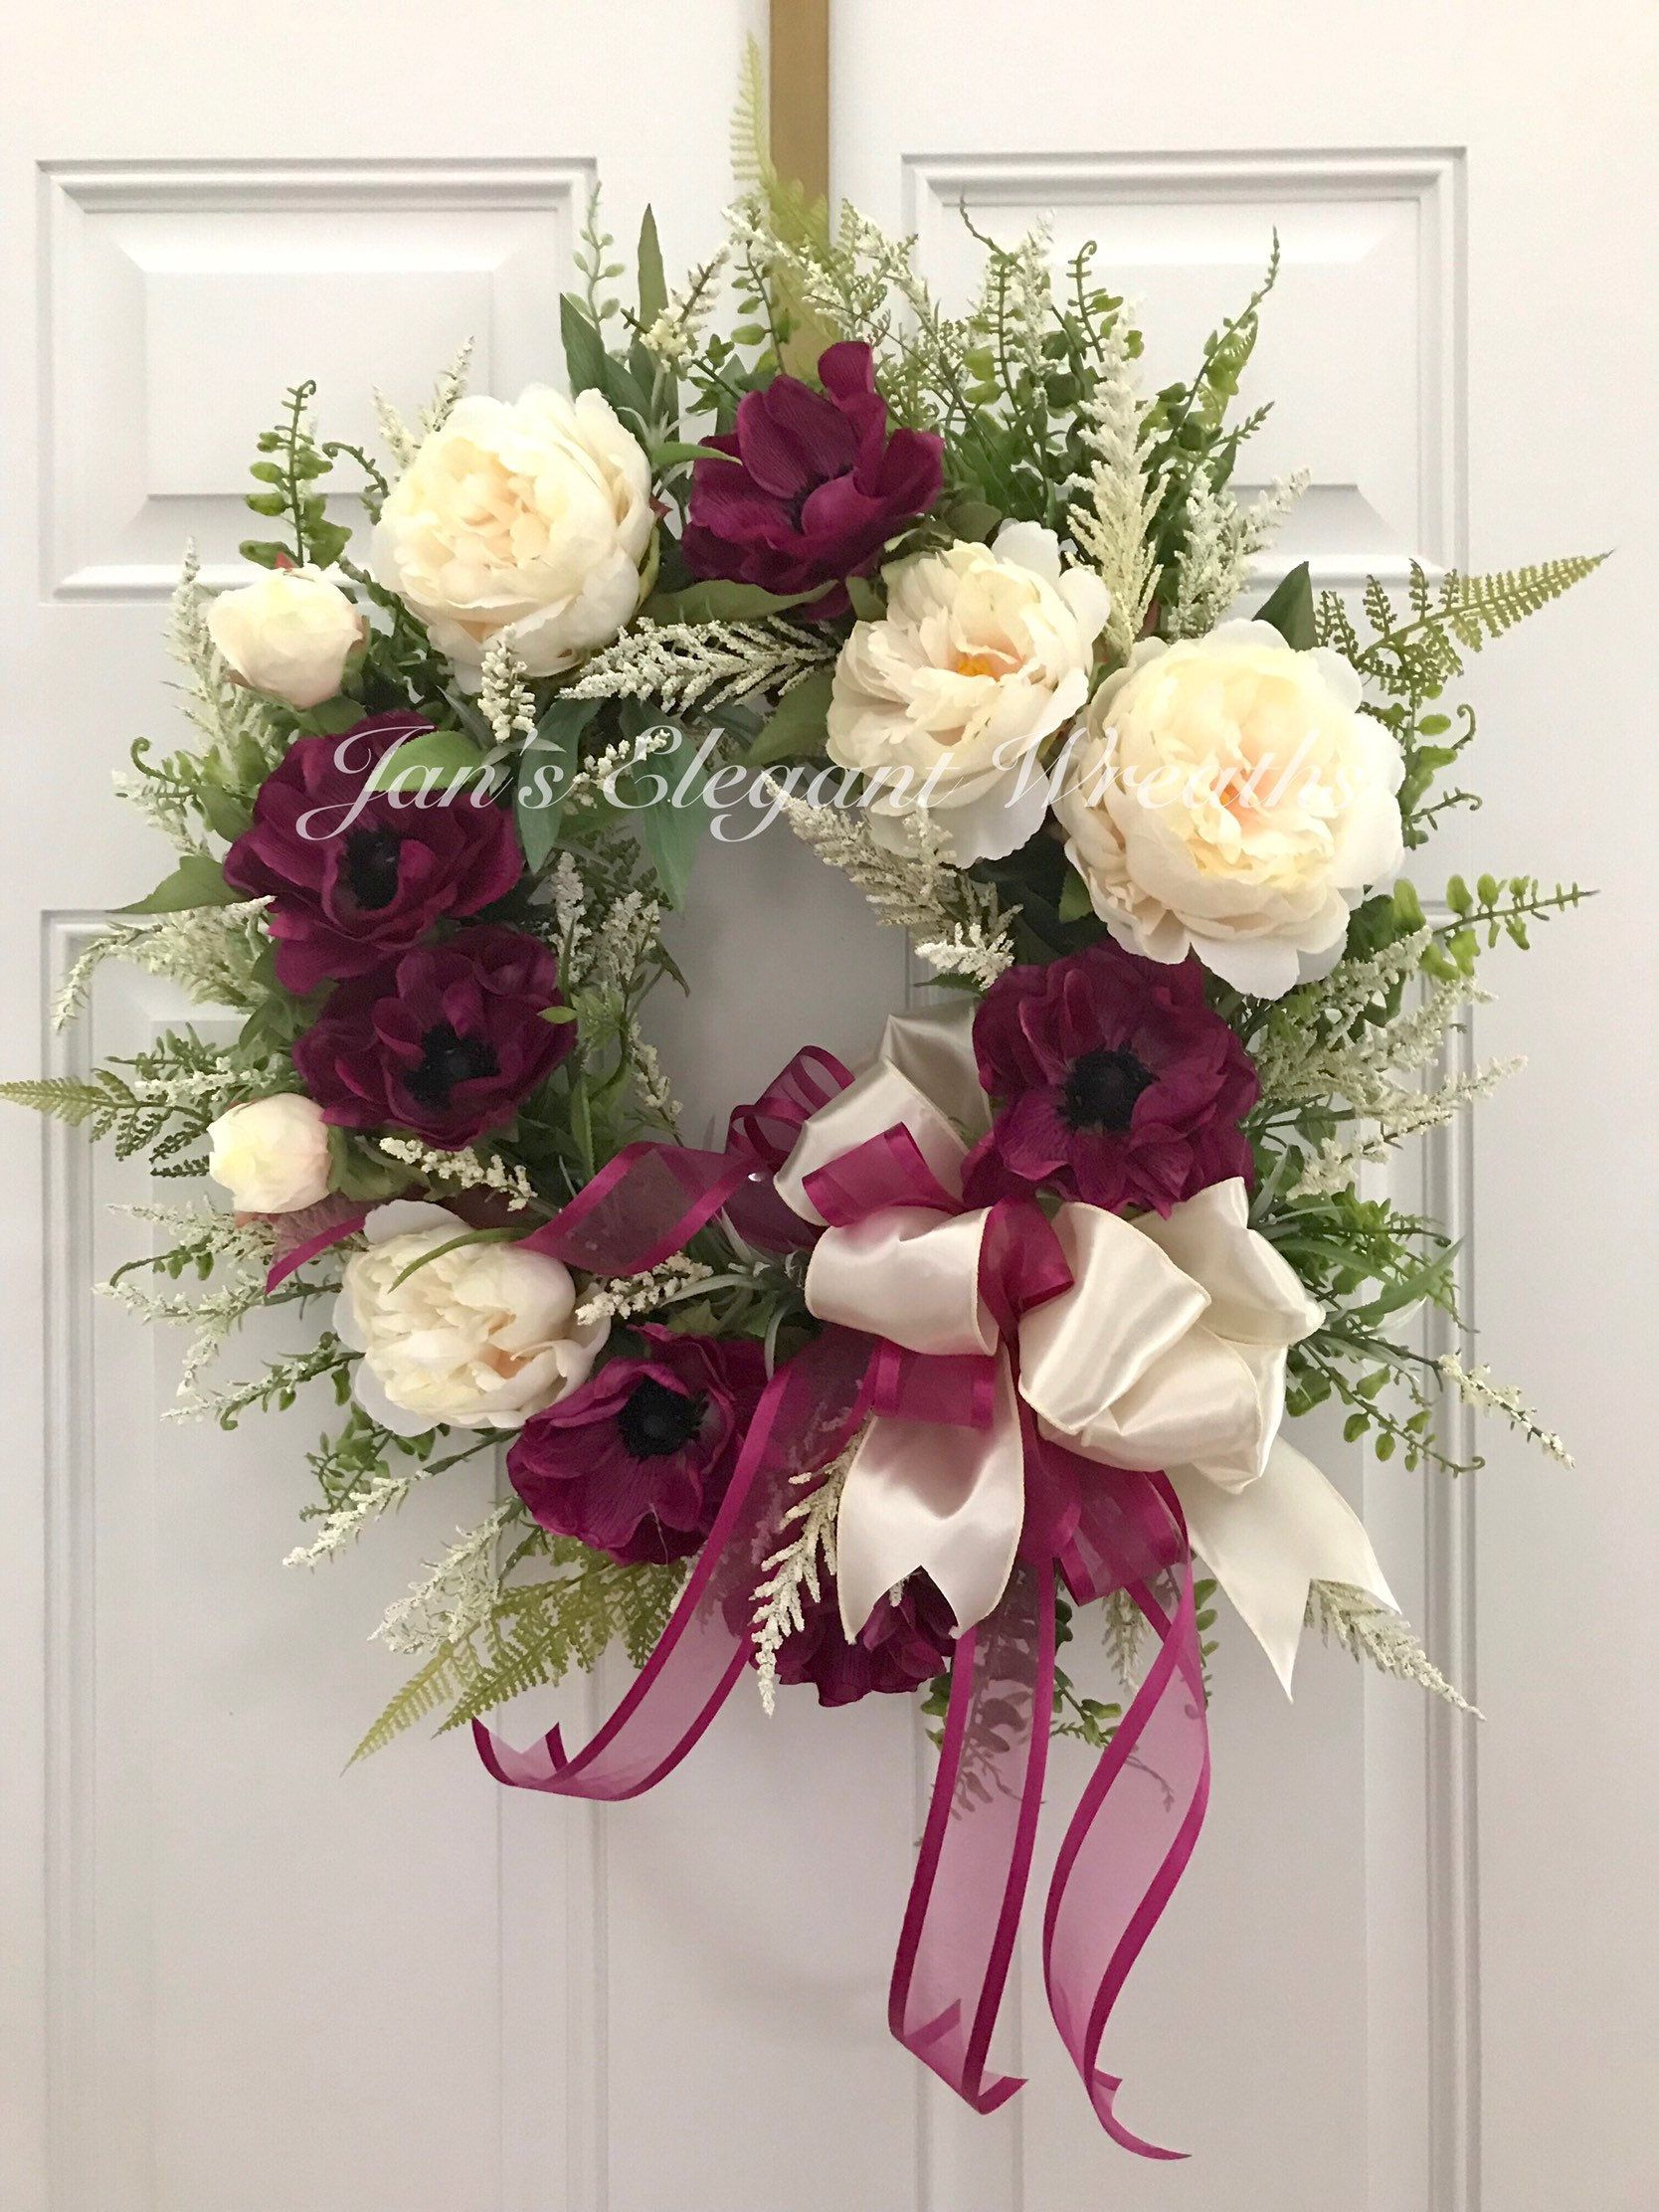 Photo of Spring wreath. Summer wreath. Peony wreath. Poppies. Mother's Day Wreath. Cottage wreath. Wedding wreath. Spring Wreath for Front Door.